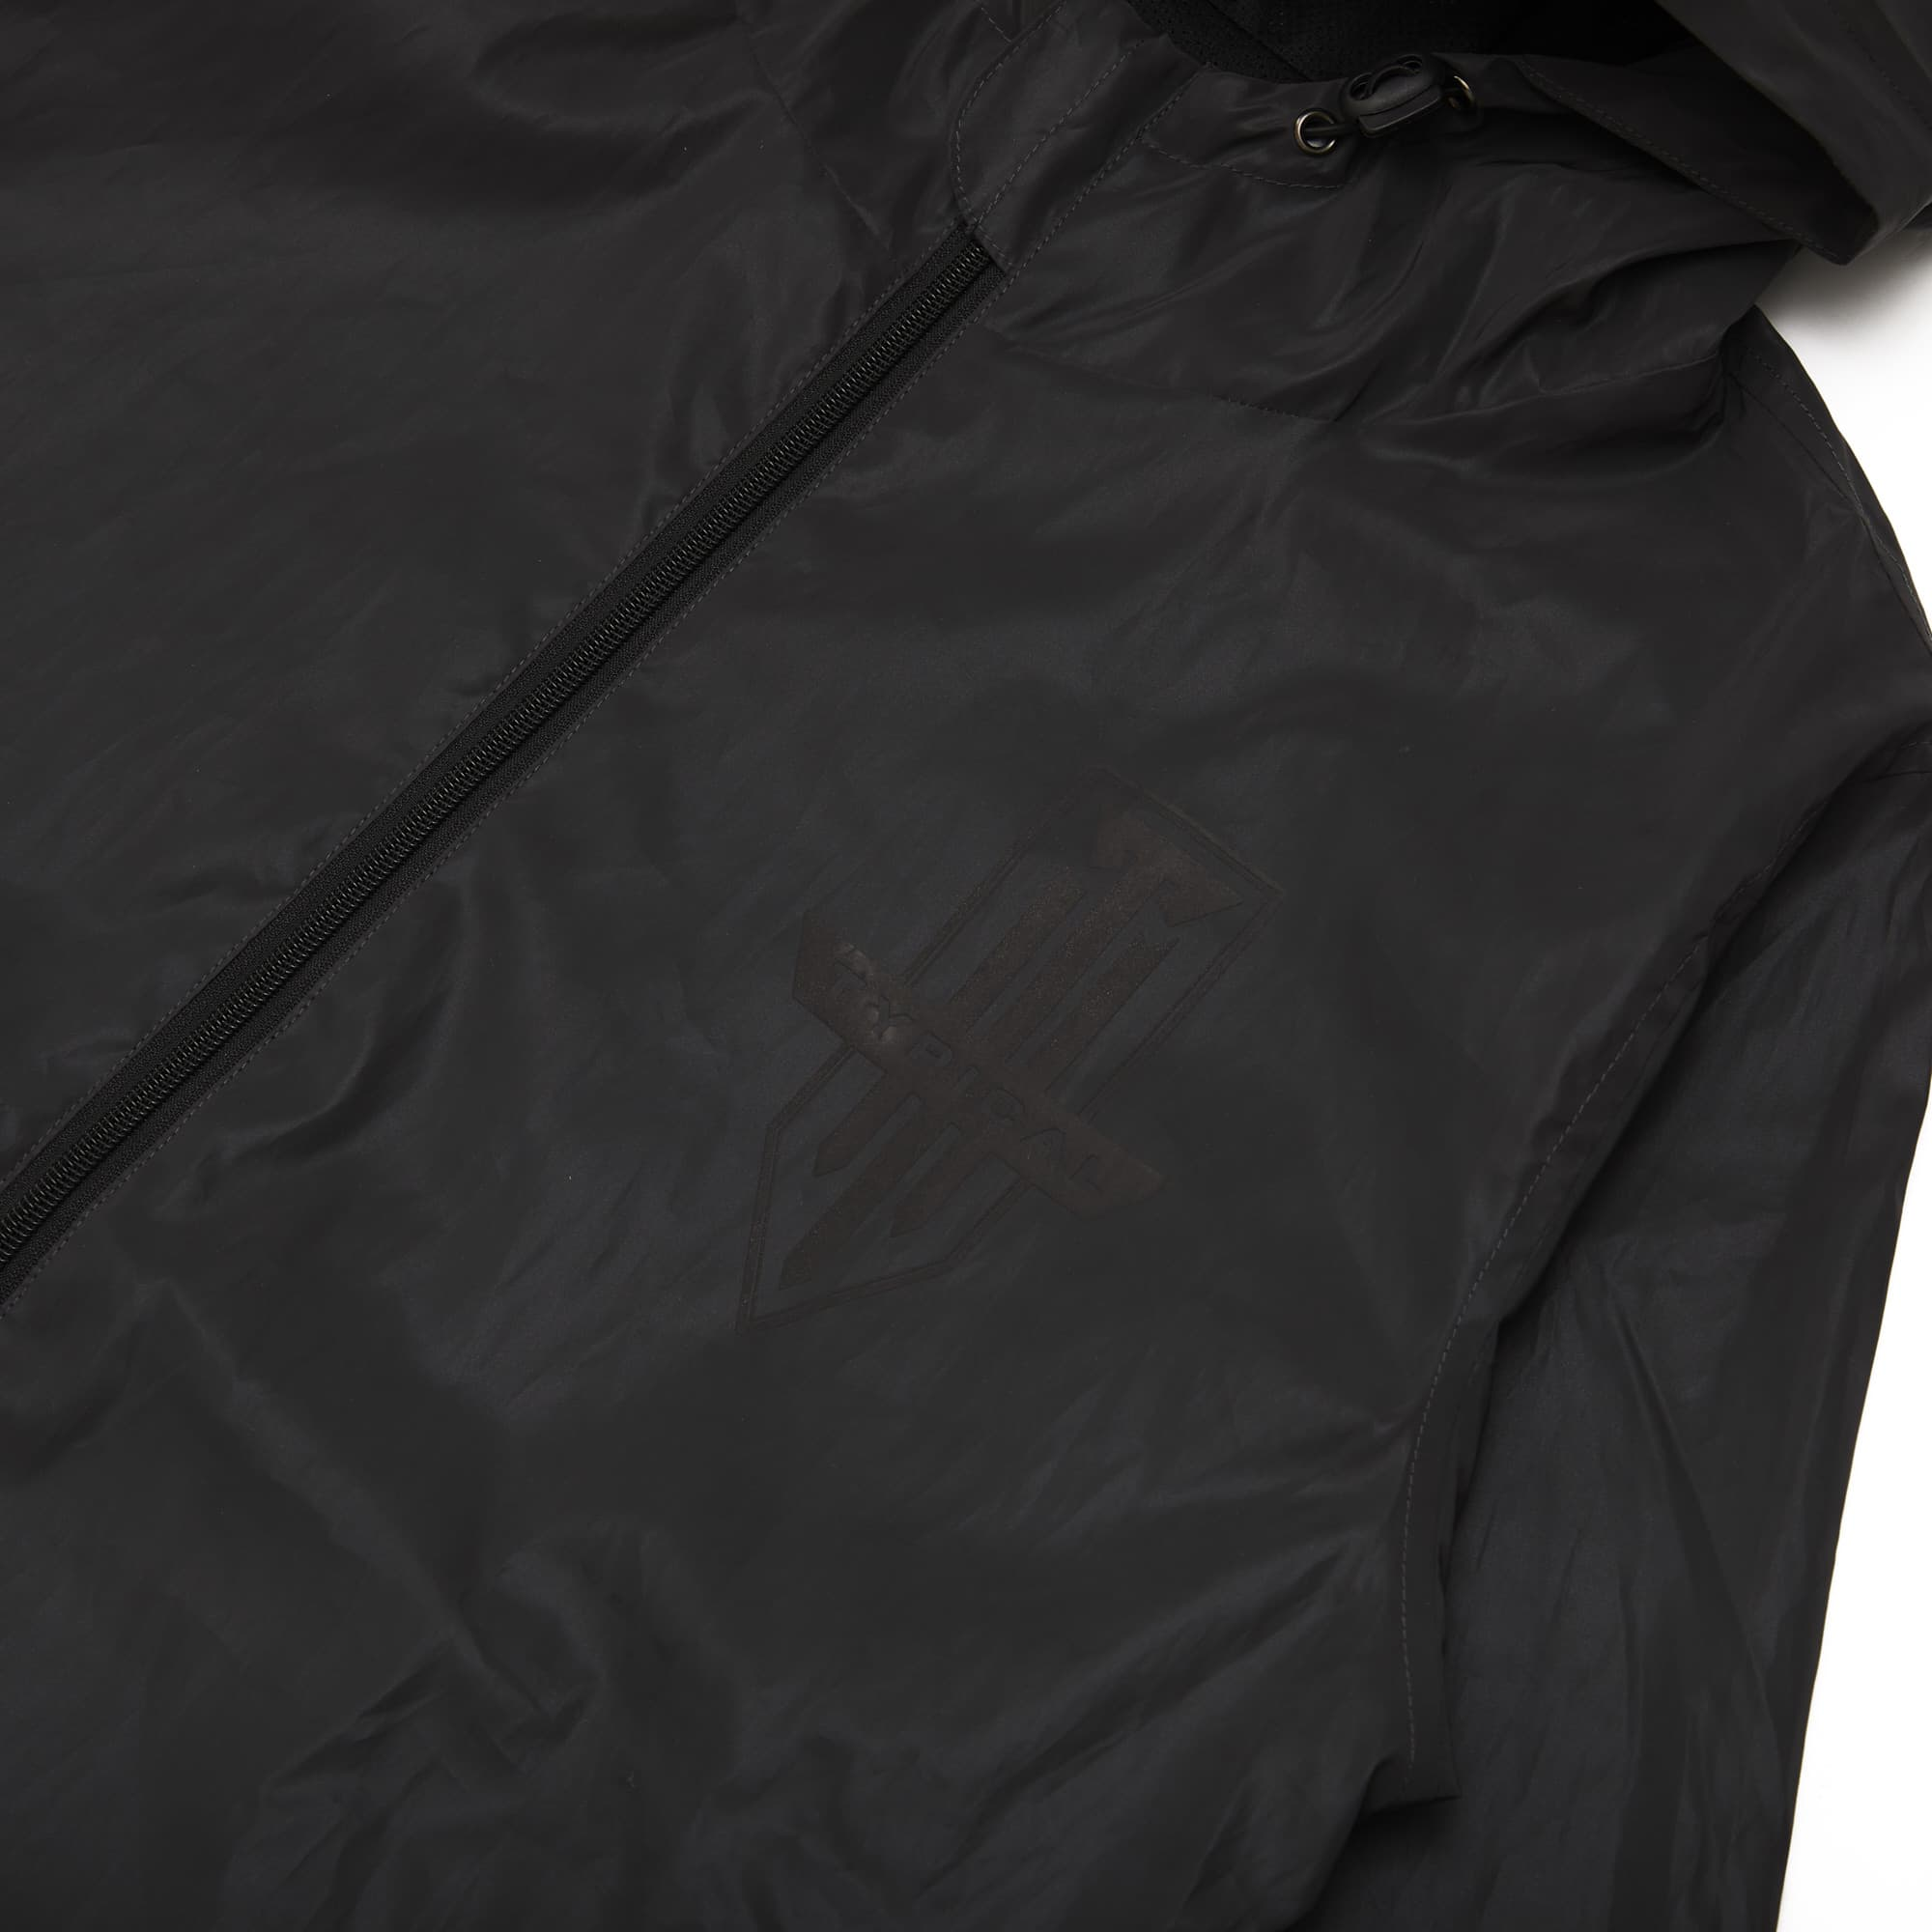 Typical 'Blackout' Reflective Jacket